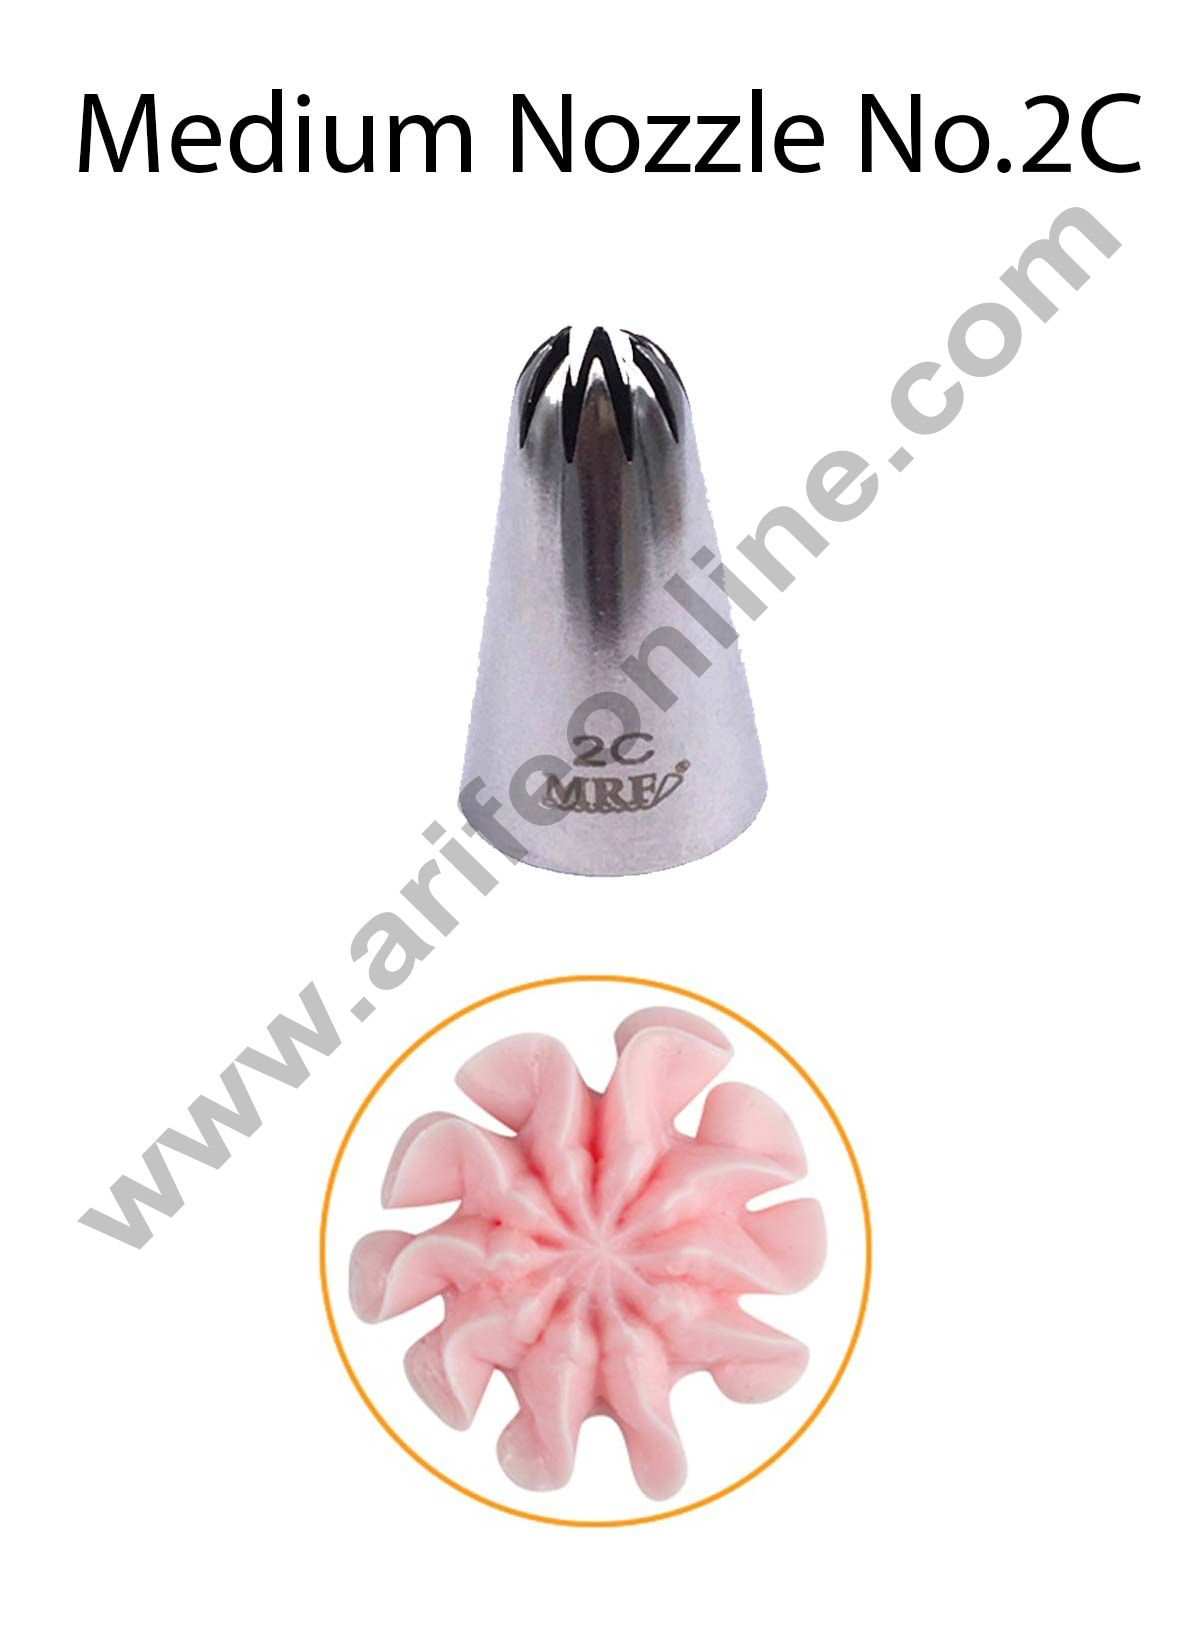 Cake Decor Medium Nozzle - No. 2D Closed Star Piping Nozzle